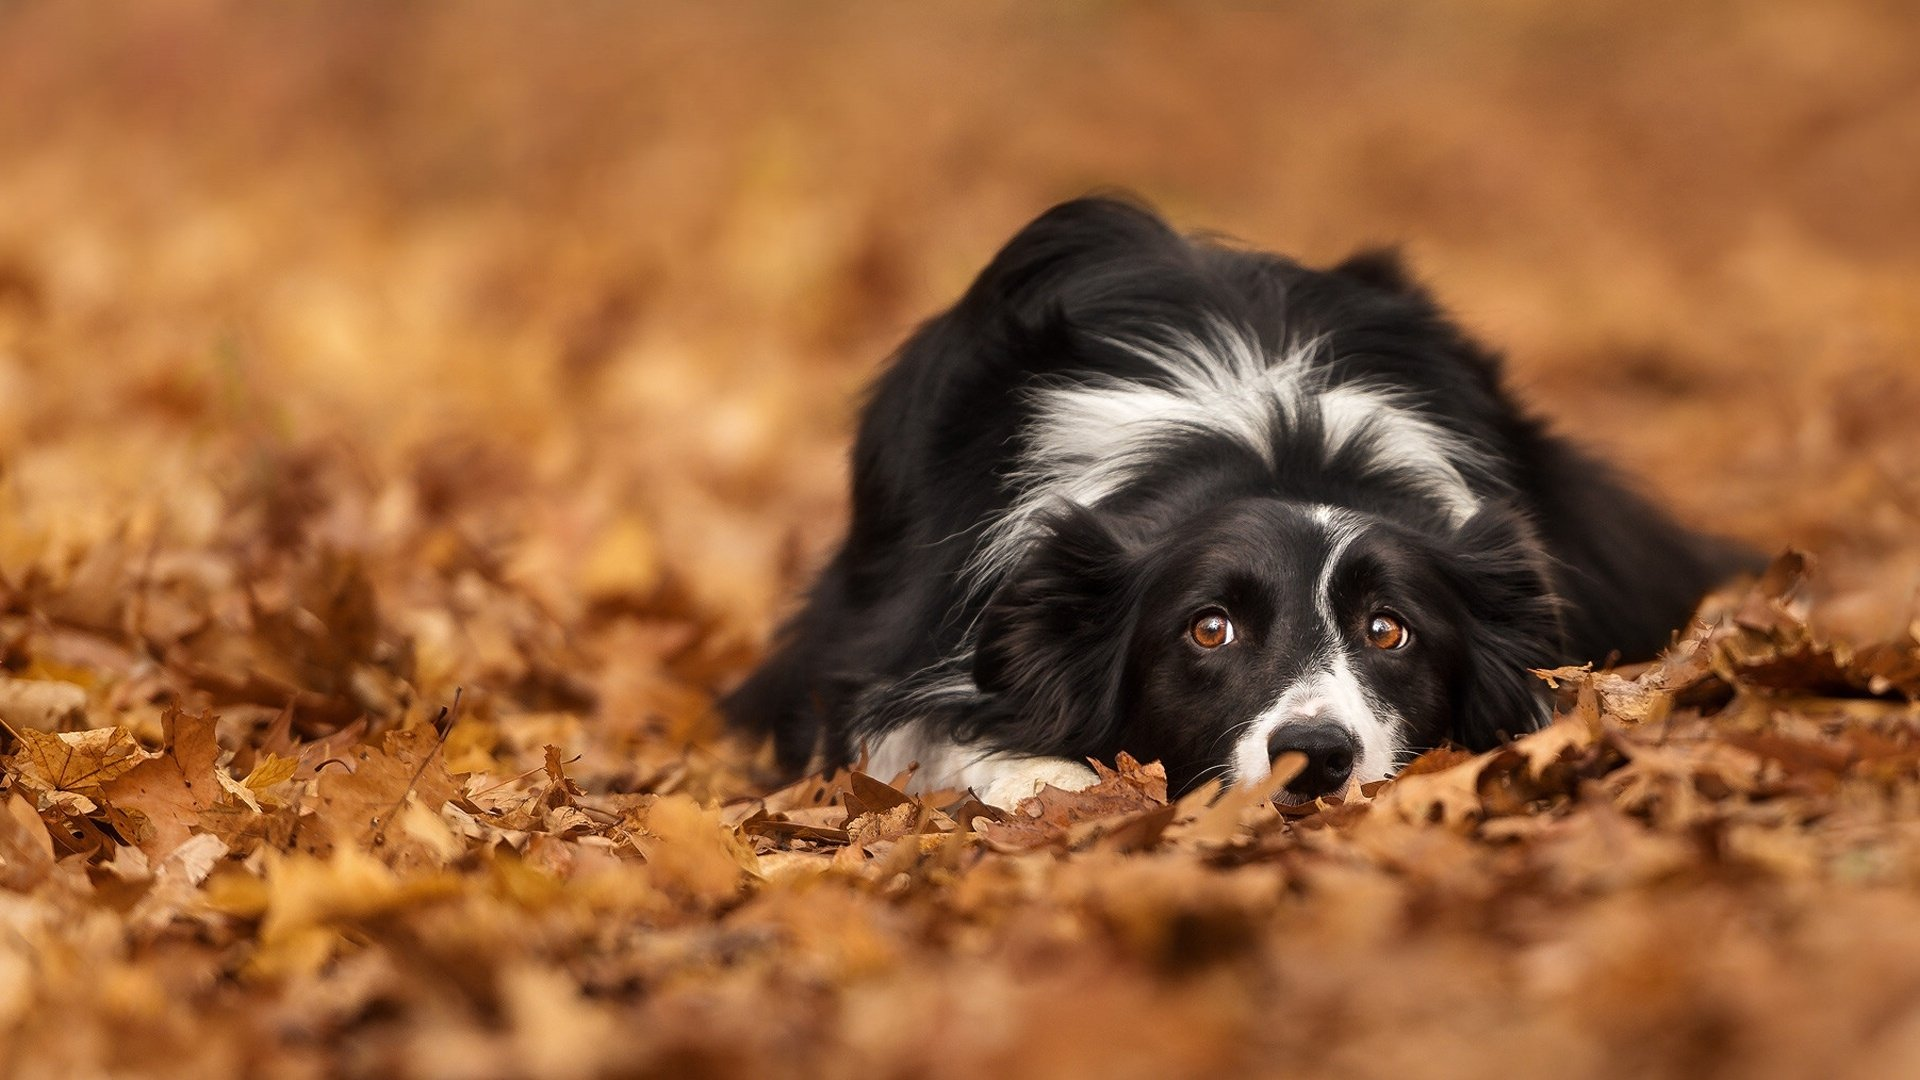 Wallpaper For Iphone 6 Fall Border Collie Hd Wallpaper Background Image 1920x1080